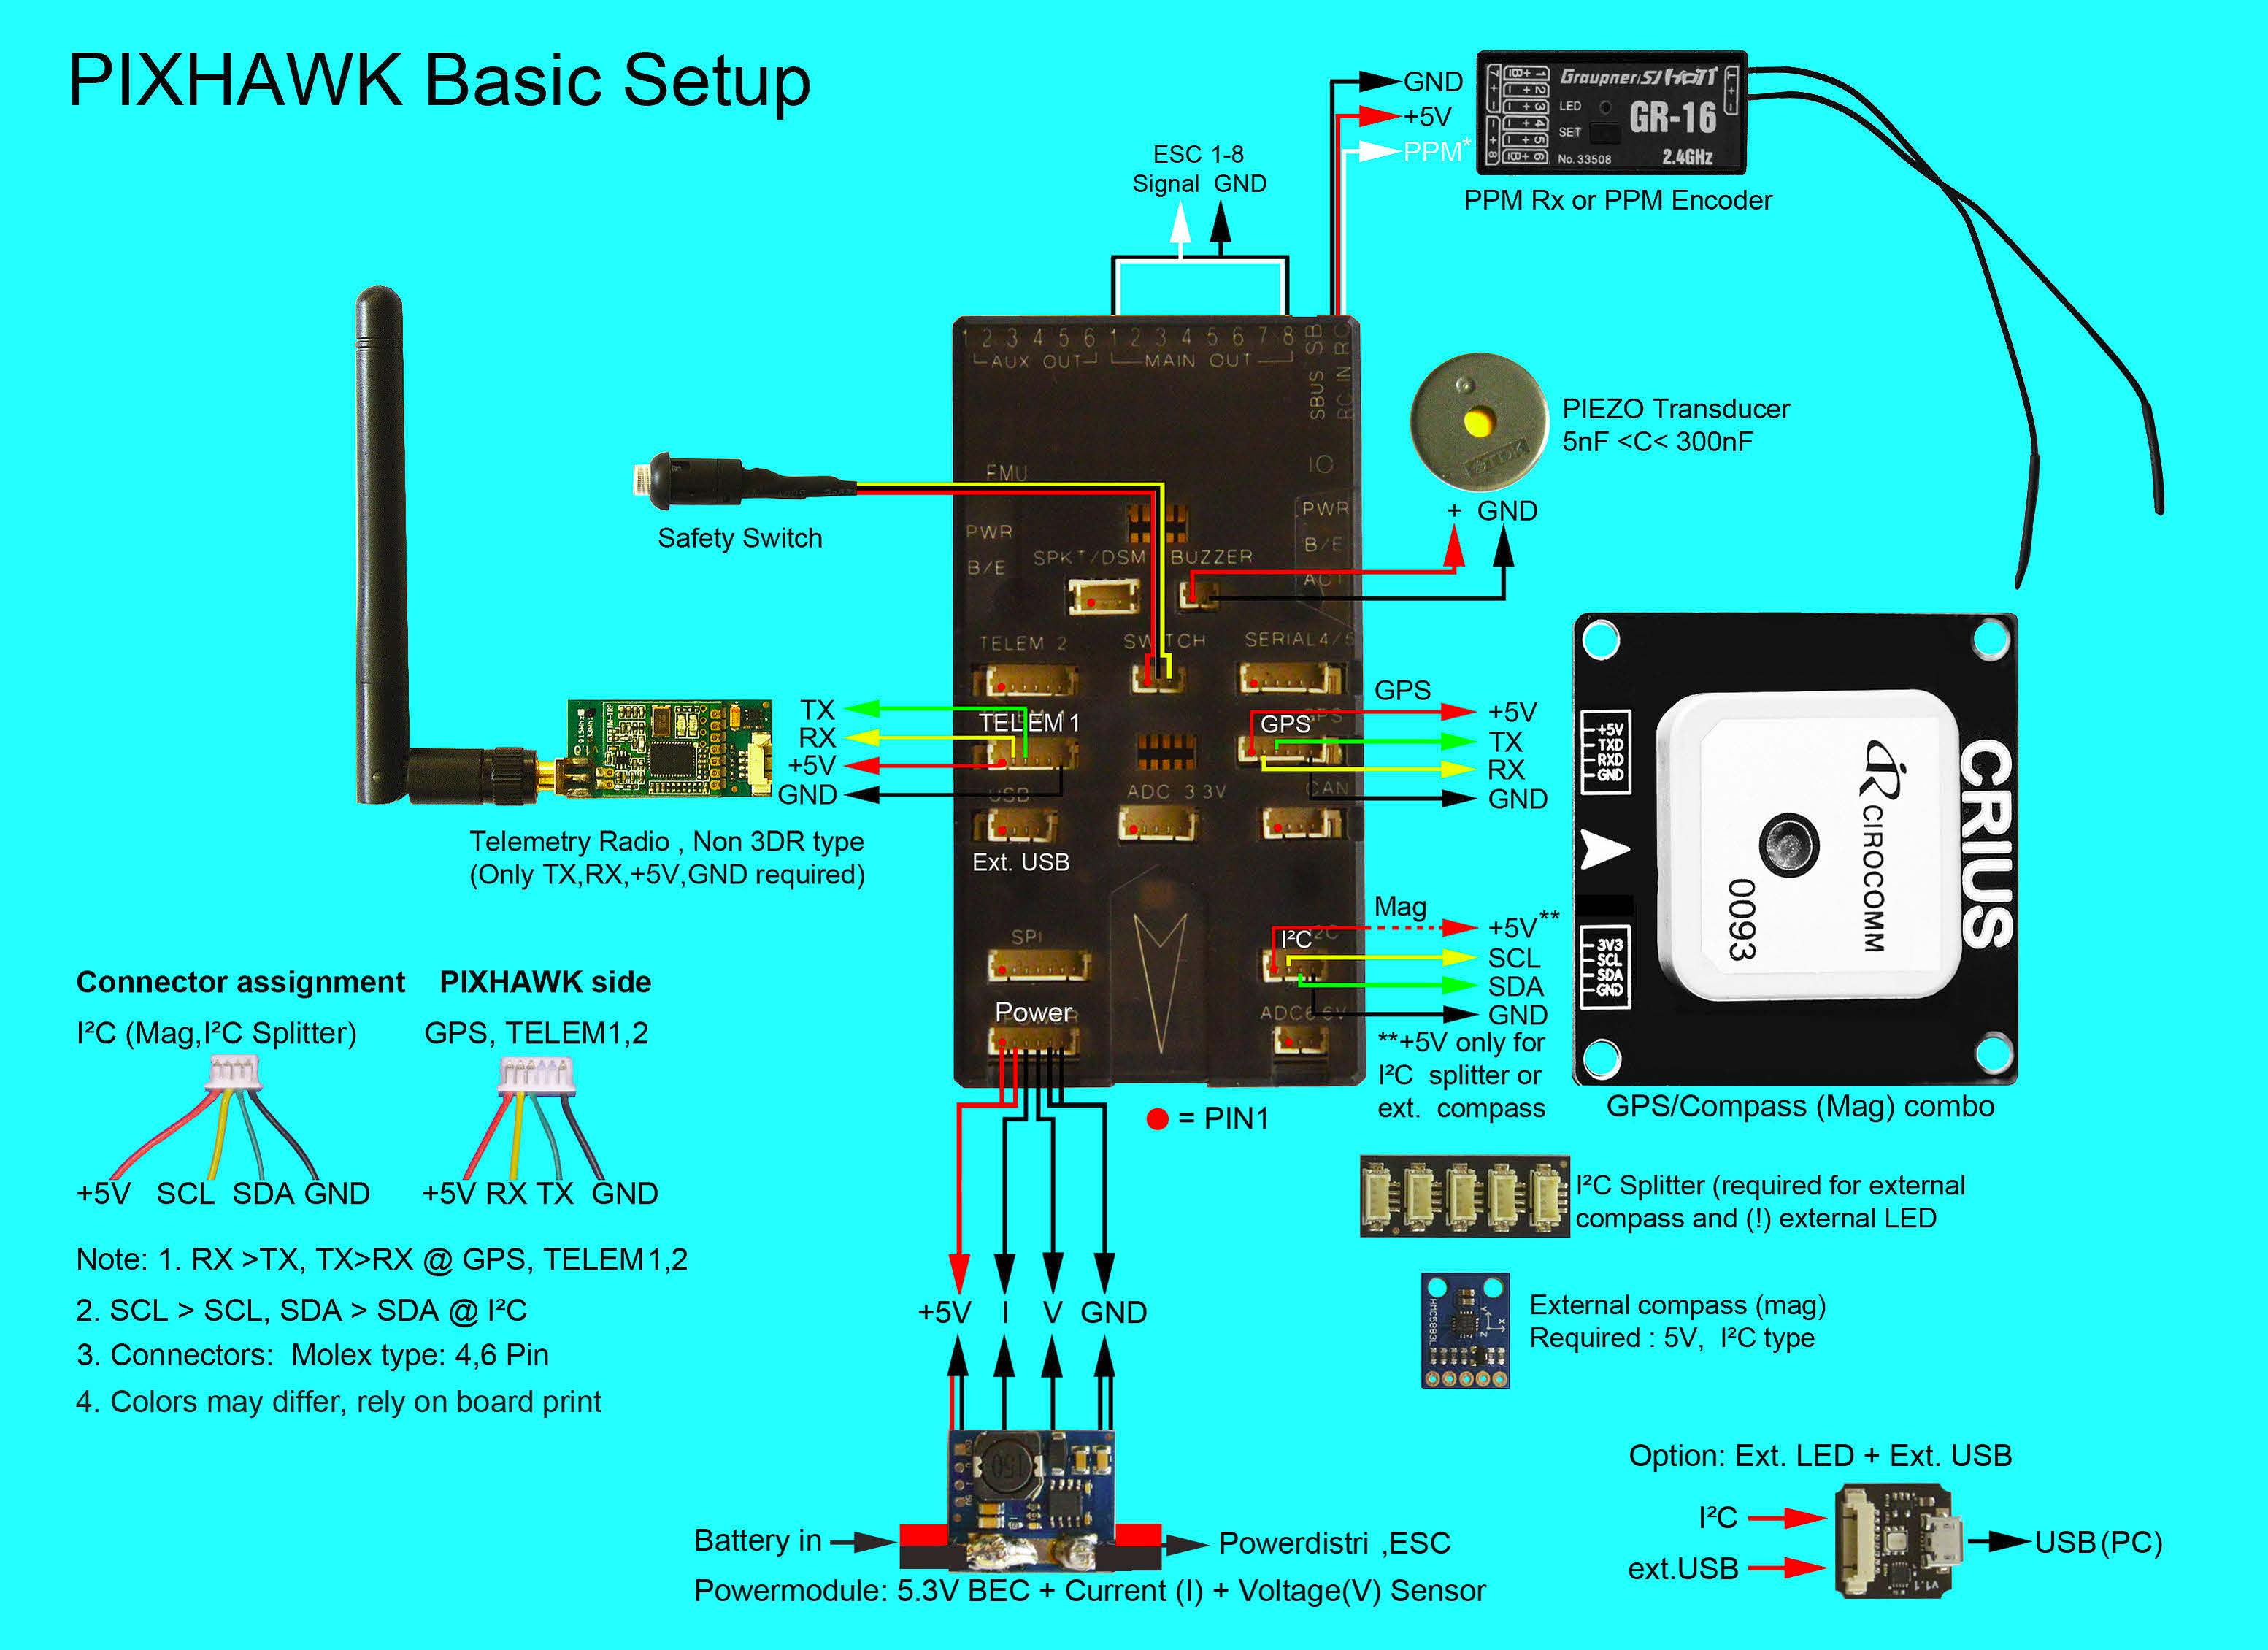 What Color Wire To Use For Telemetry Connection To Flight